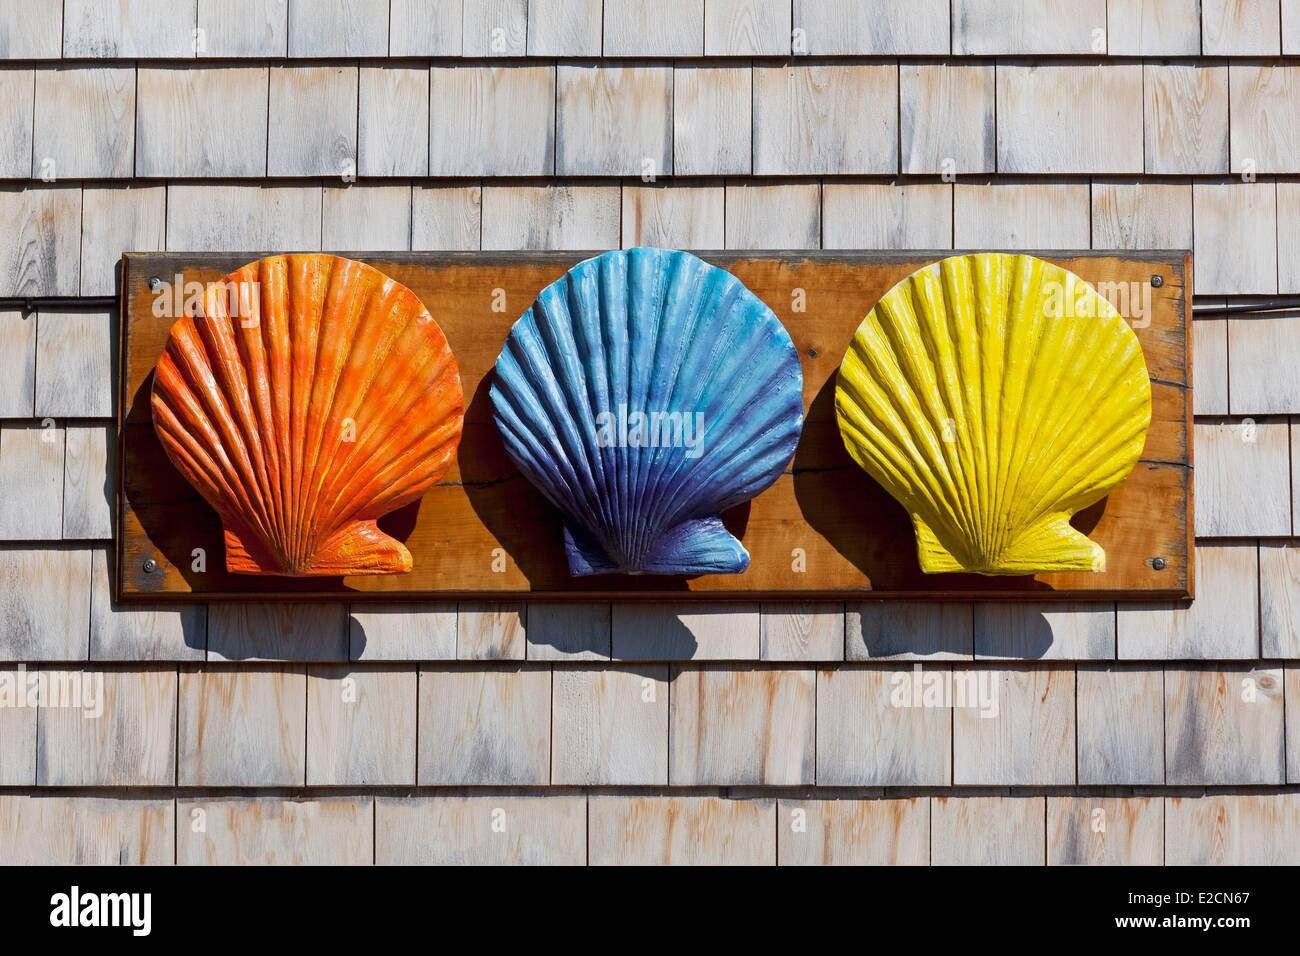 United States Maine Ogunquit Perkins Cove decoration on a house facade colored St. Jacques scallops - Stock Image